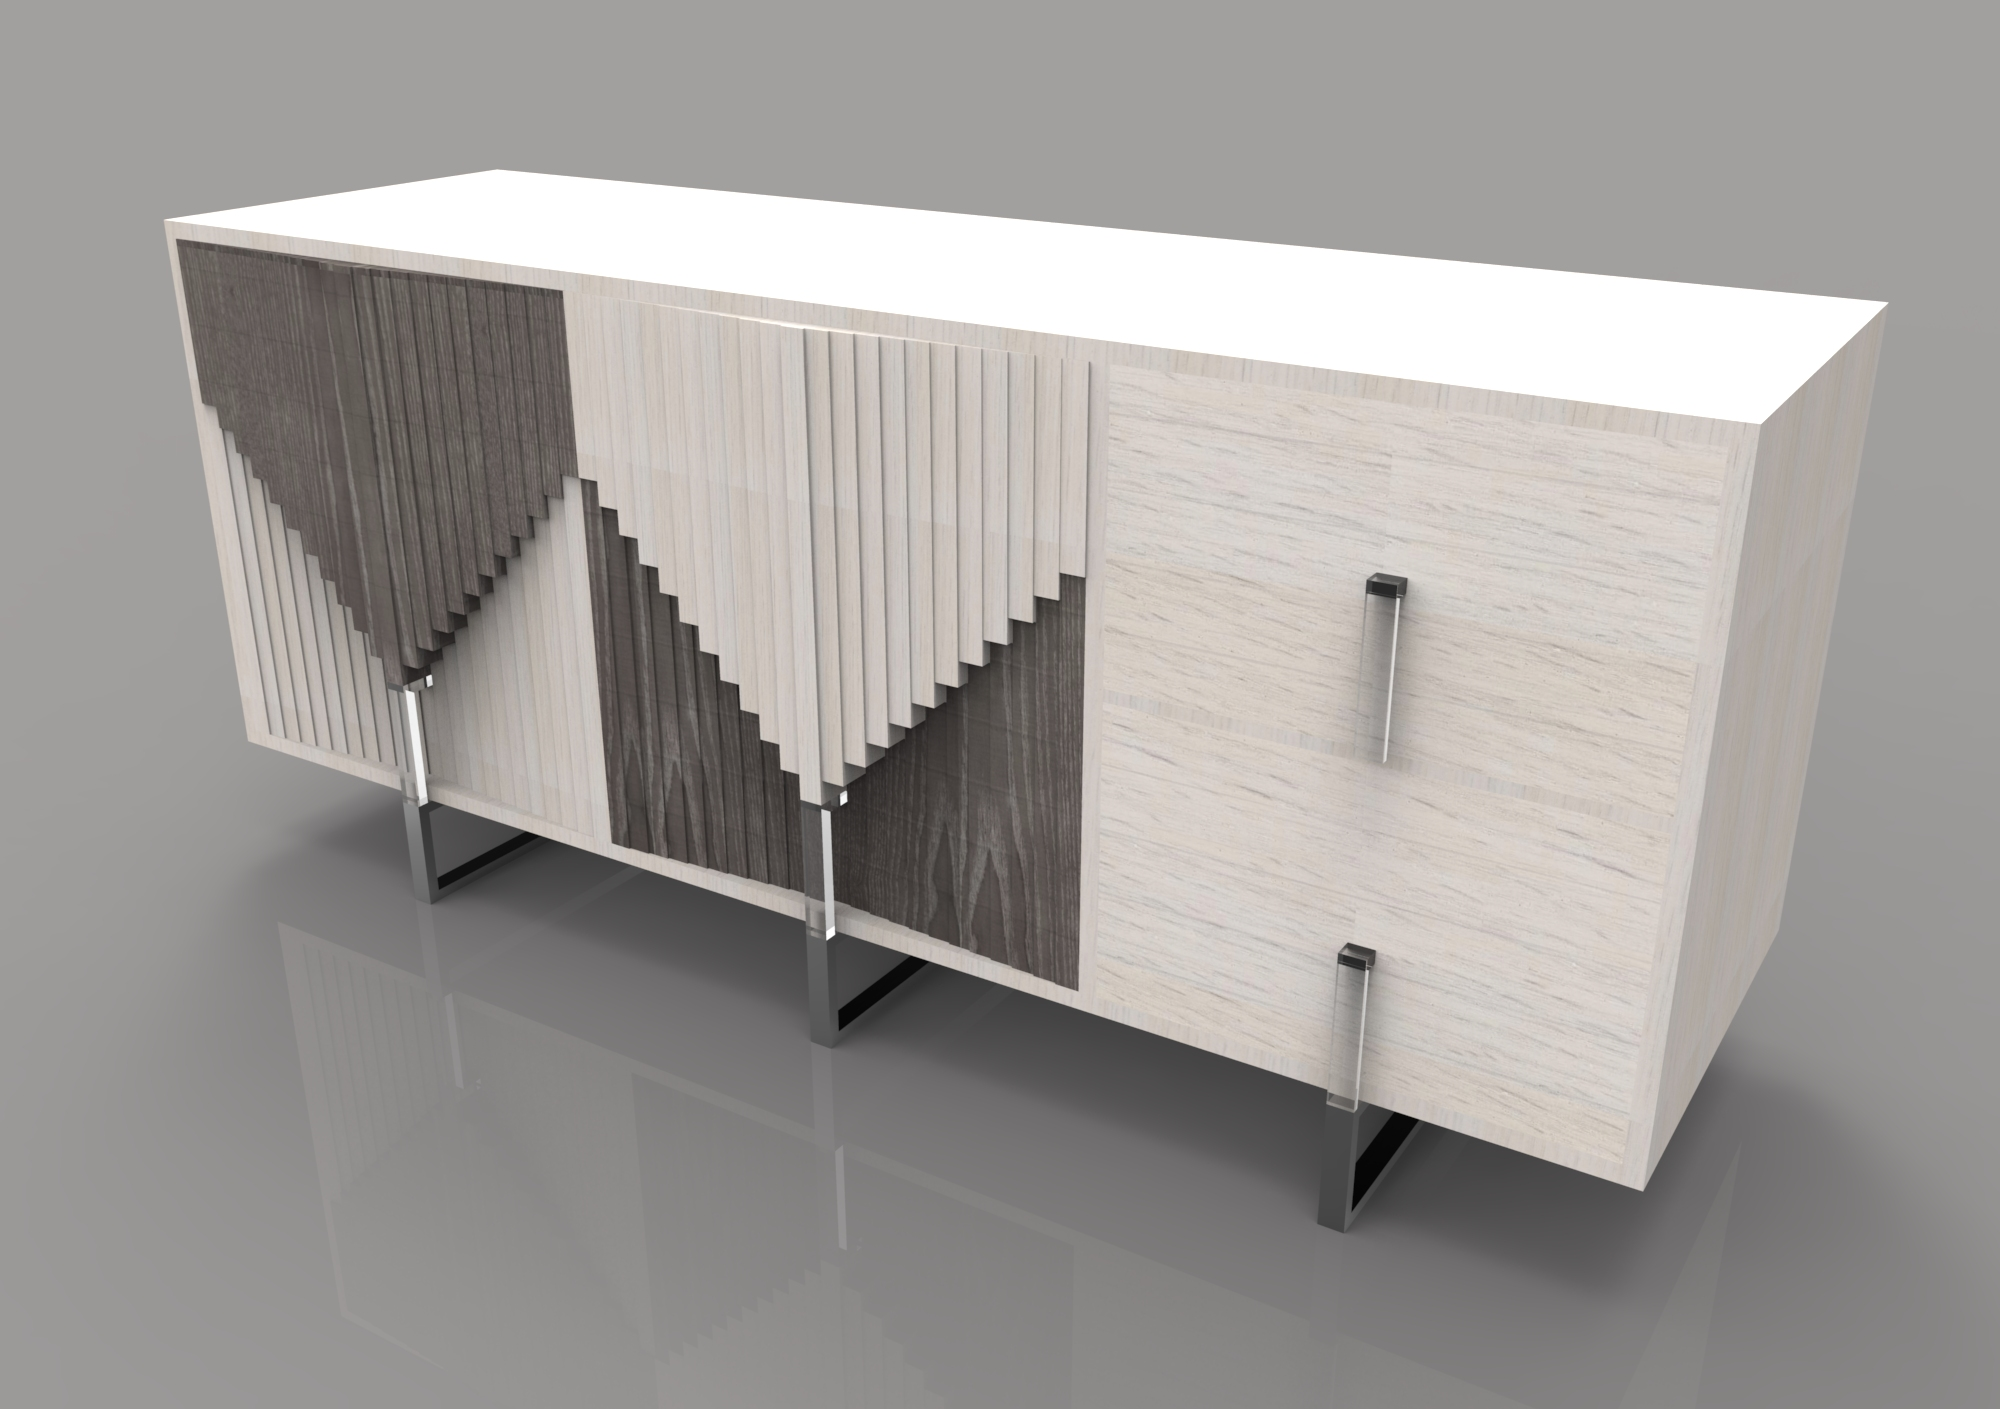 rendering of a credenza designed by Patti Men in the KCAD Furniture Design program